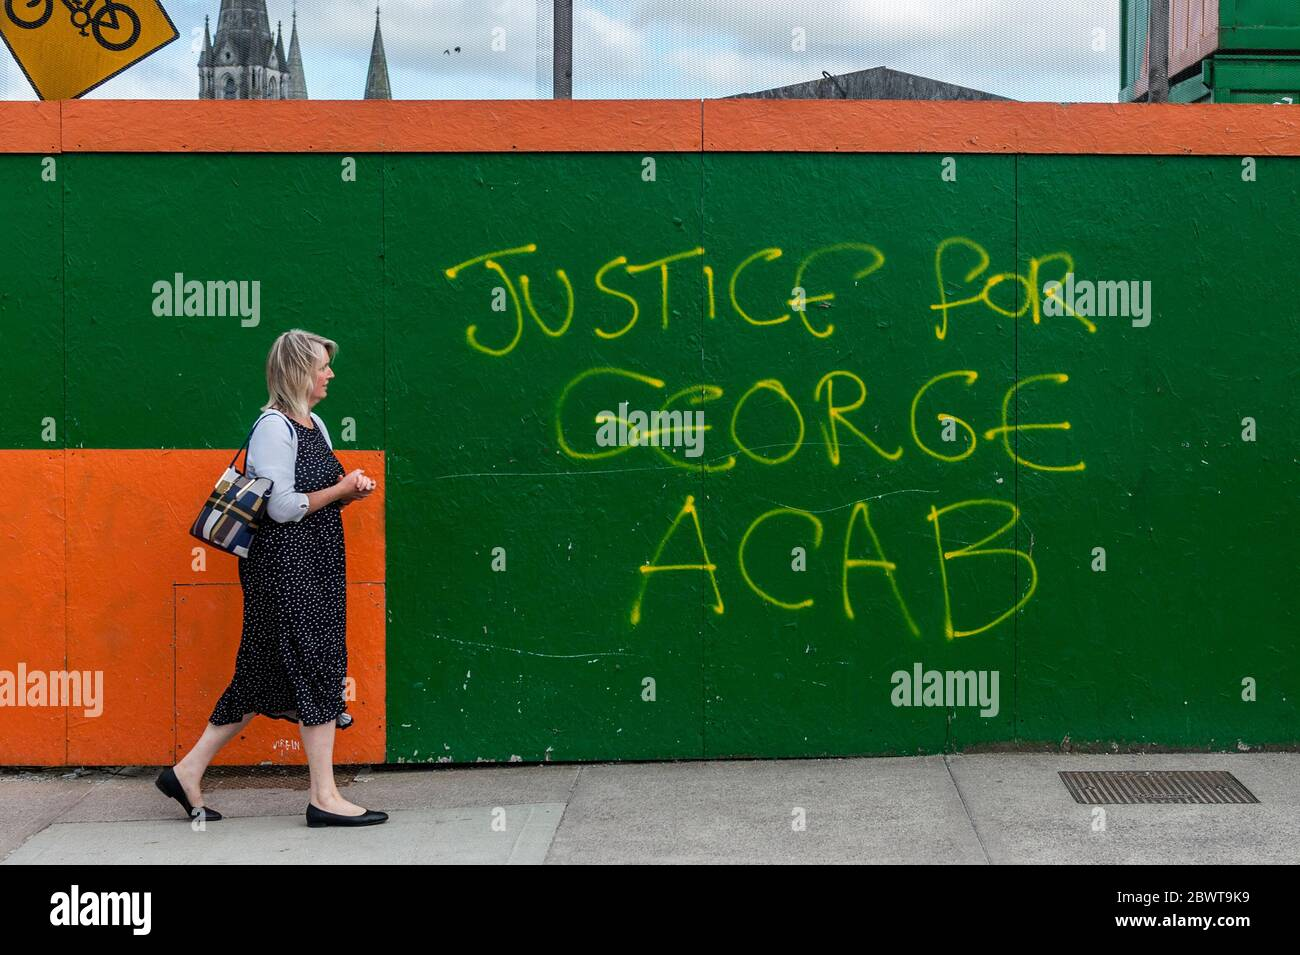 cork-ireland-3rd-june-2020-a-woman-walks-past-george-floyd-graffiti-in-cork-city-the-graffiti-is-in-protest-at-the-killing-of-george-floyd-an-unarmed-black-man-who-was-murdered-by-police-in-minnesota-last-week-credit-ag-newsalamy-live-news-2BWT9K9.jpg